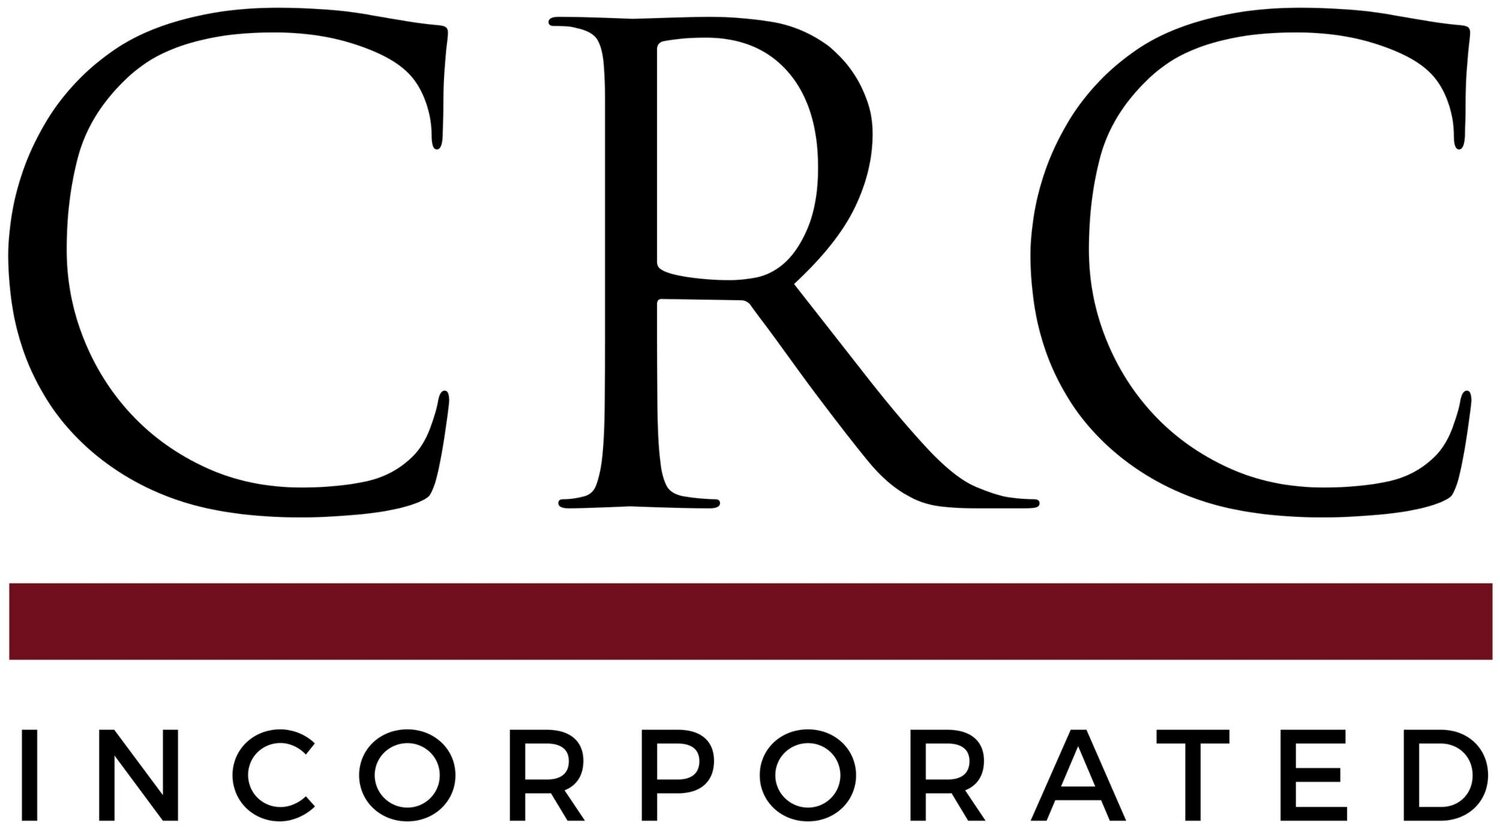 CRC, Incorporated